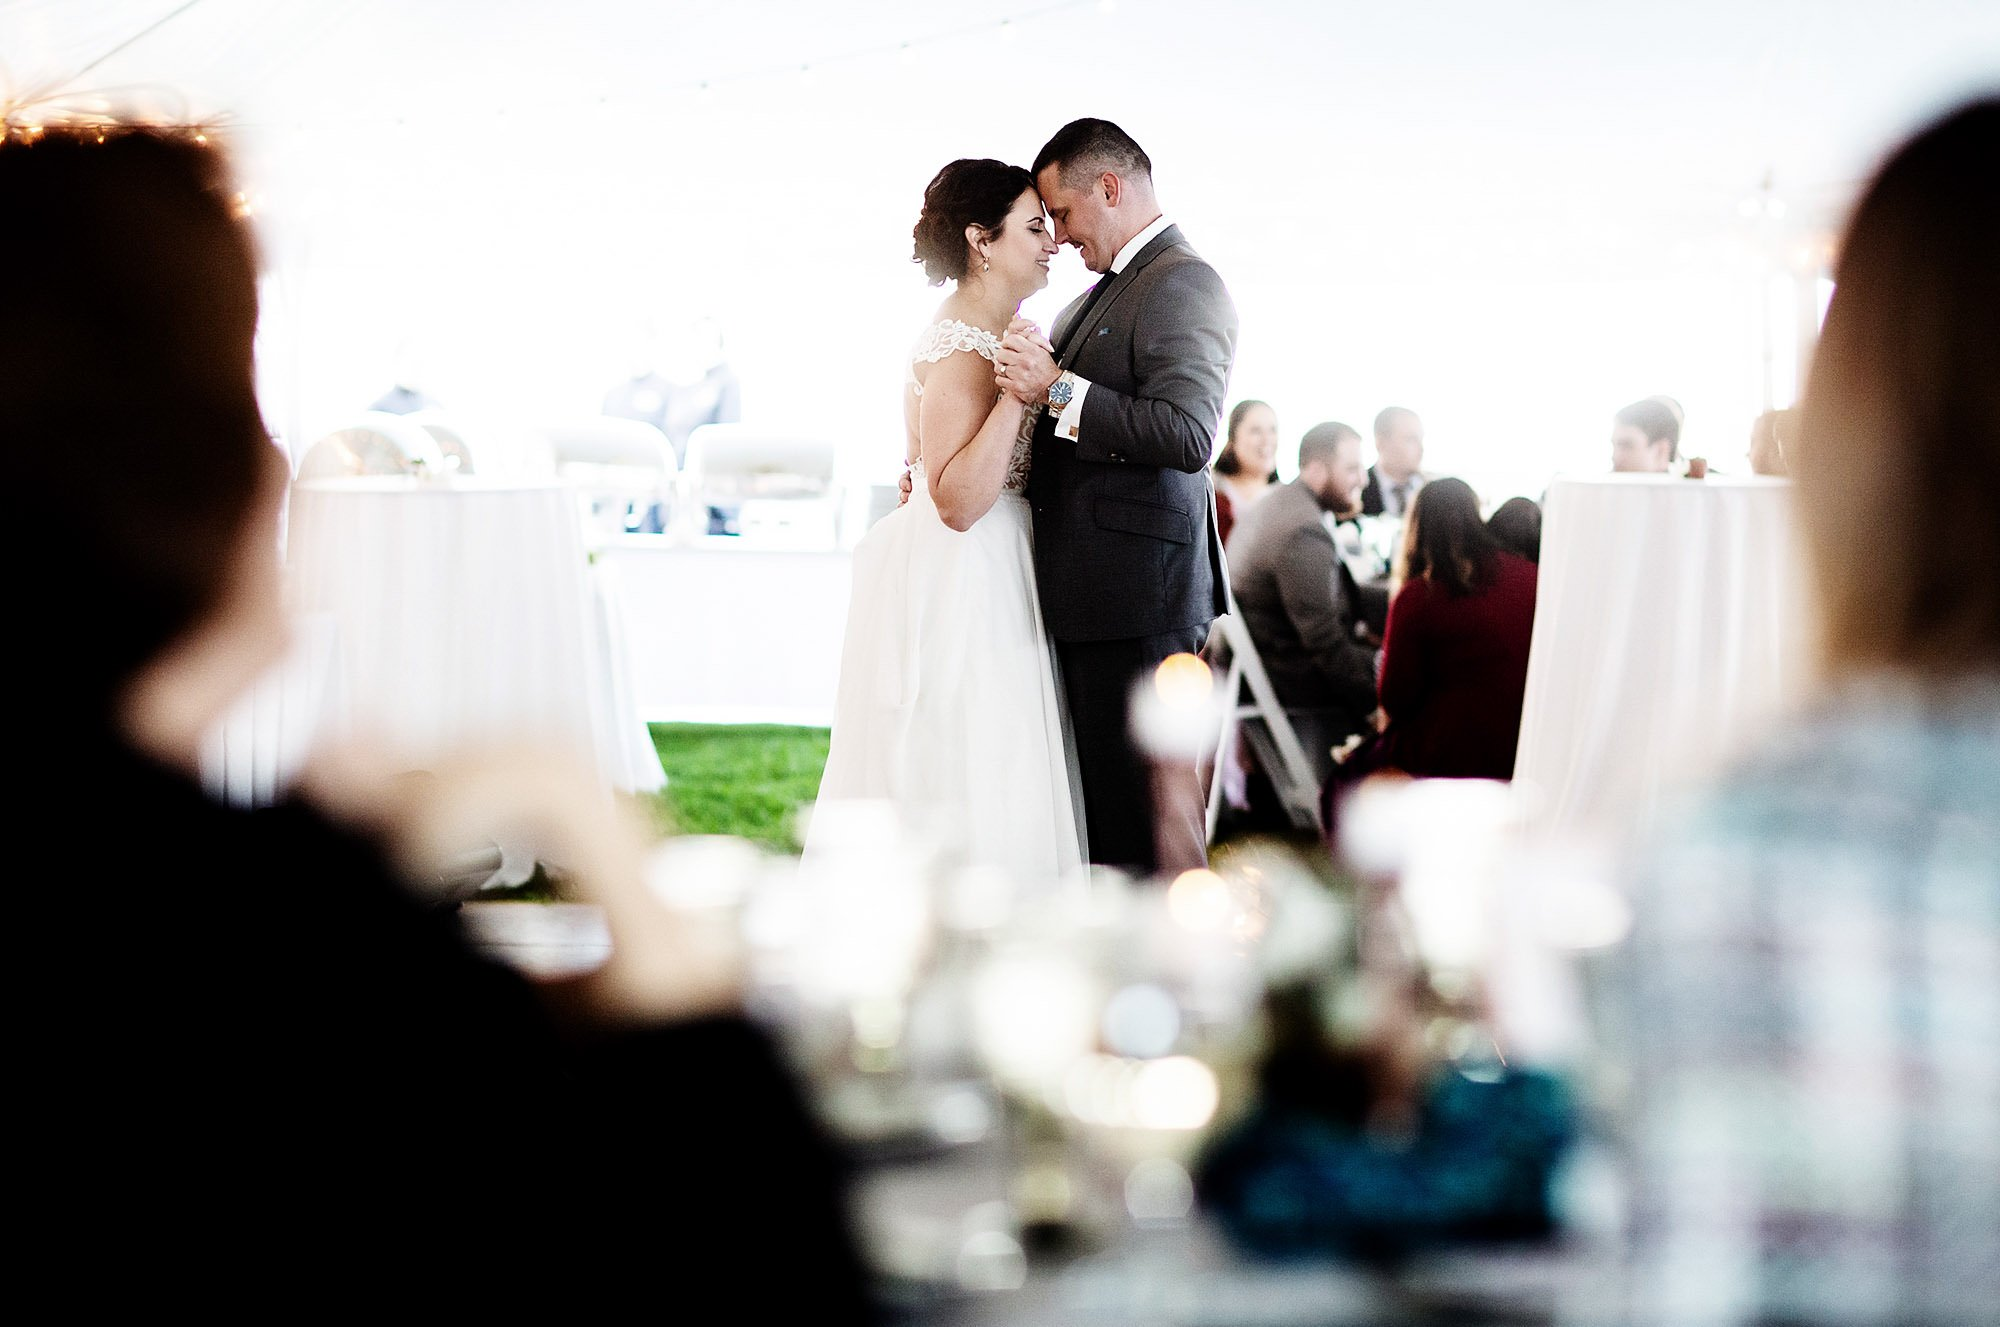 The bride and groom share their first dance during their Pelham House Resort wedding.